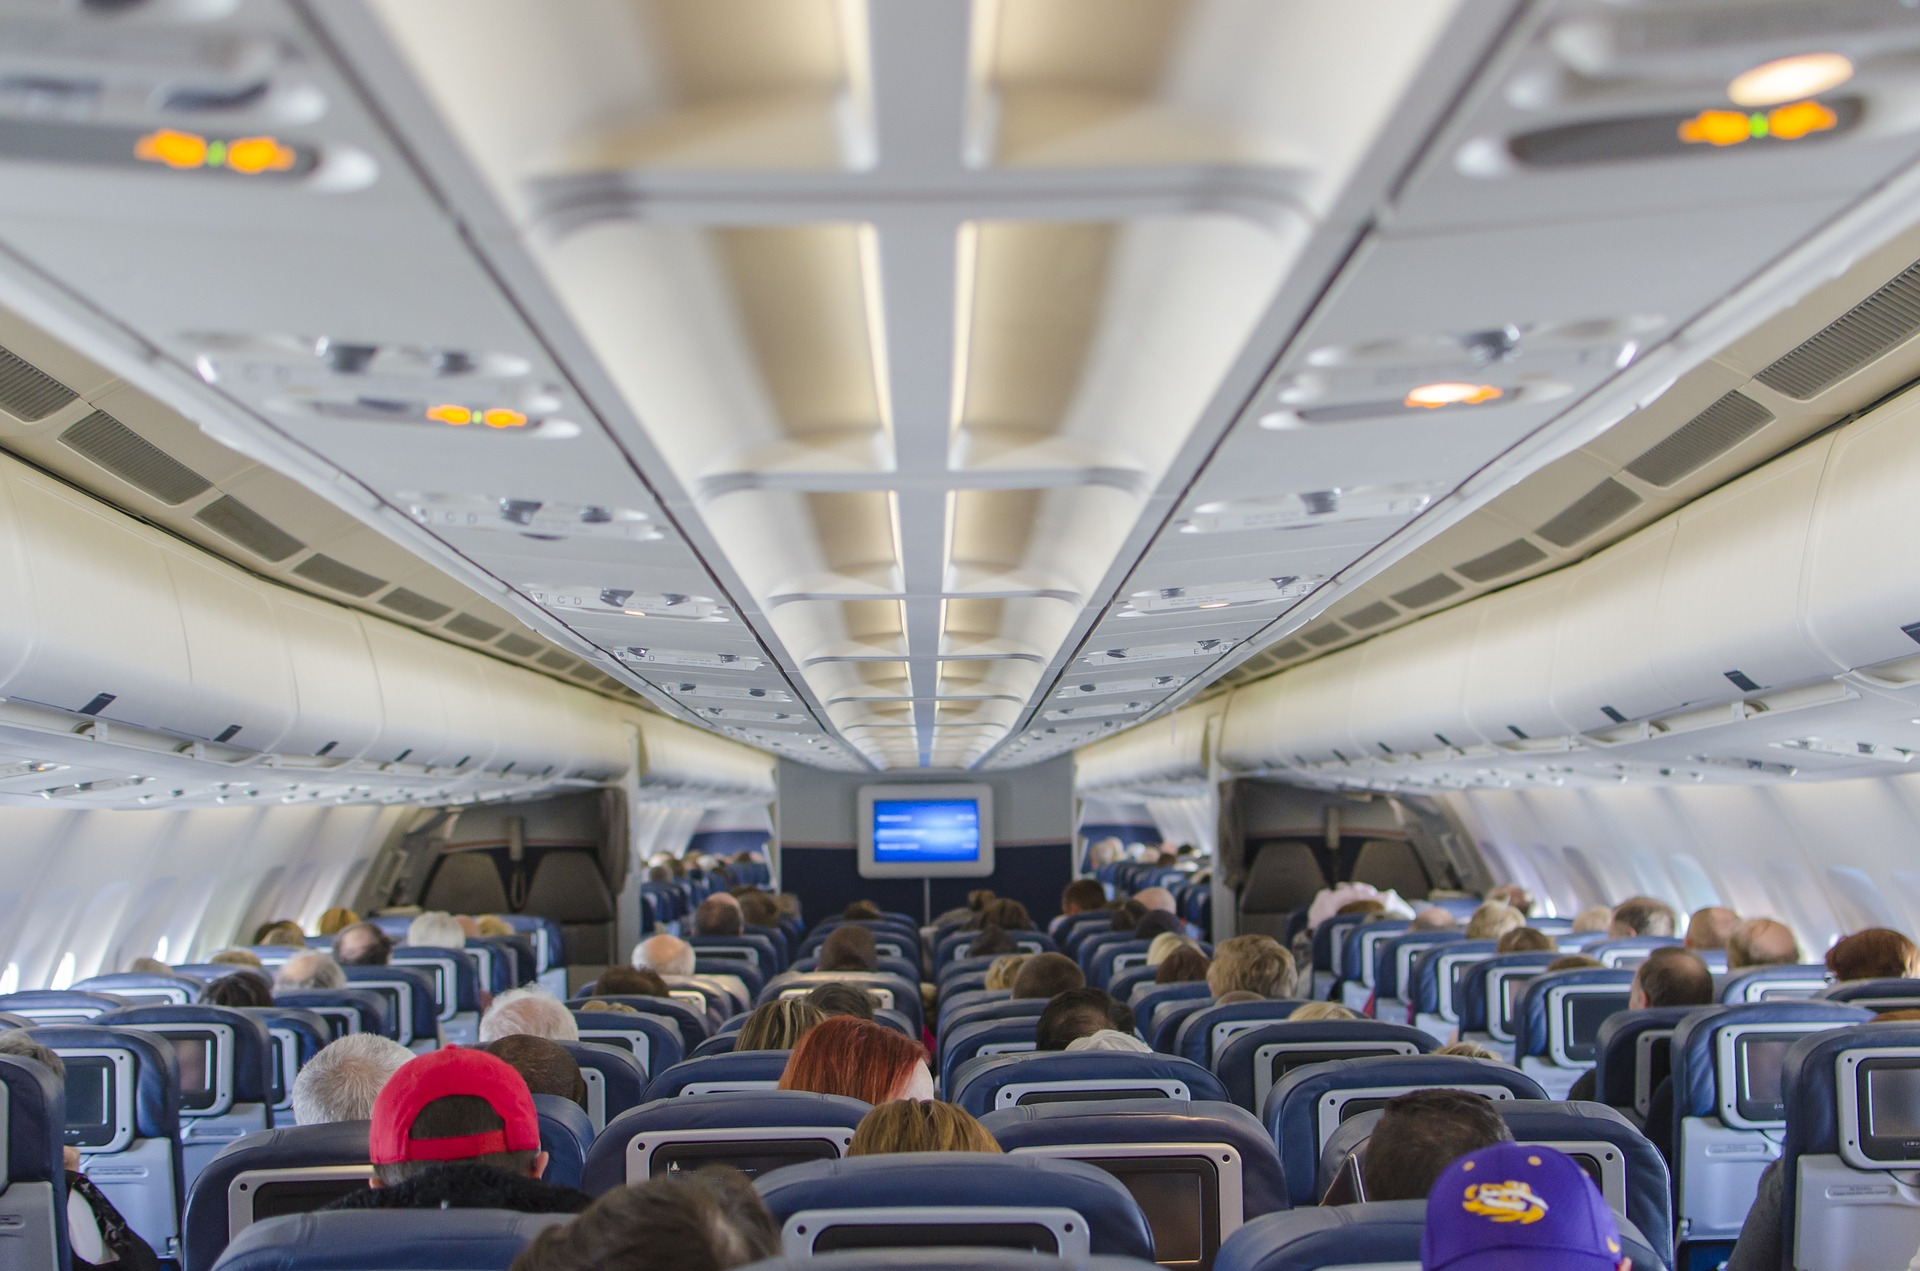 Rethinking the Airplane Cabin - Air Travel Insights | SIS Research